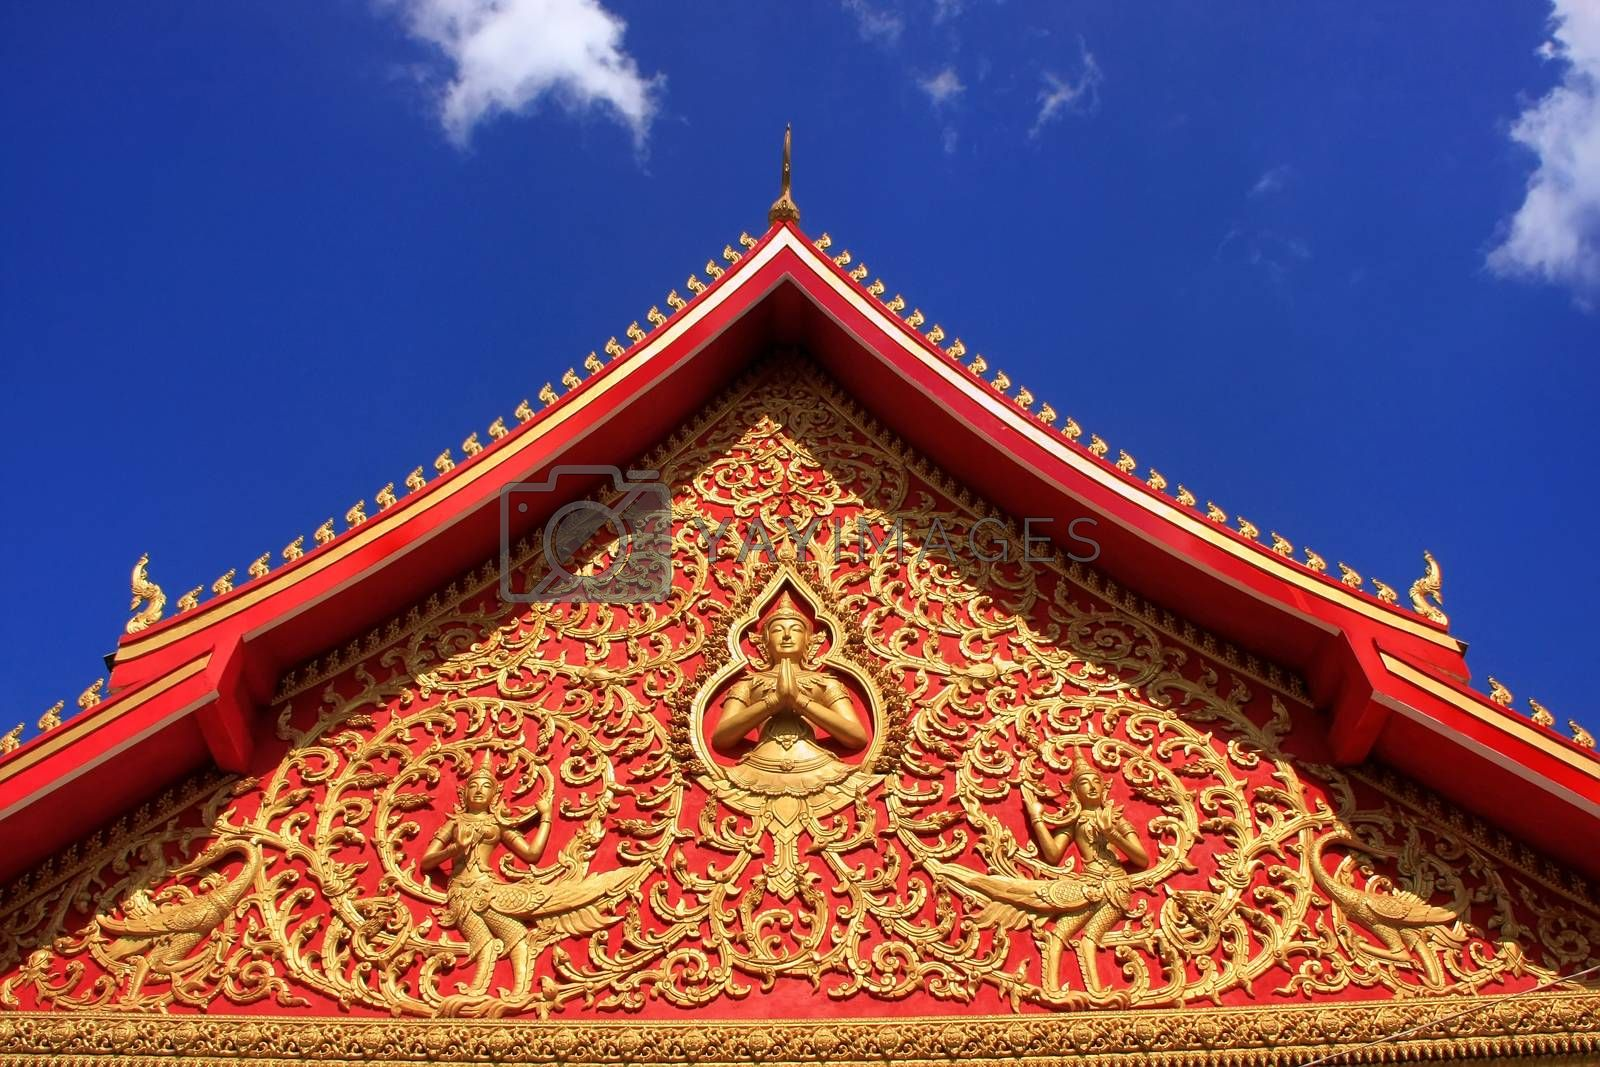 Royalty free image of Decoration of a roof, Wat Si Saket, Vientiane, Laos by donya_nedomam